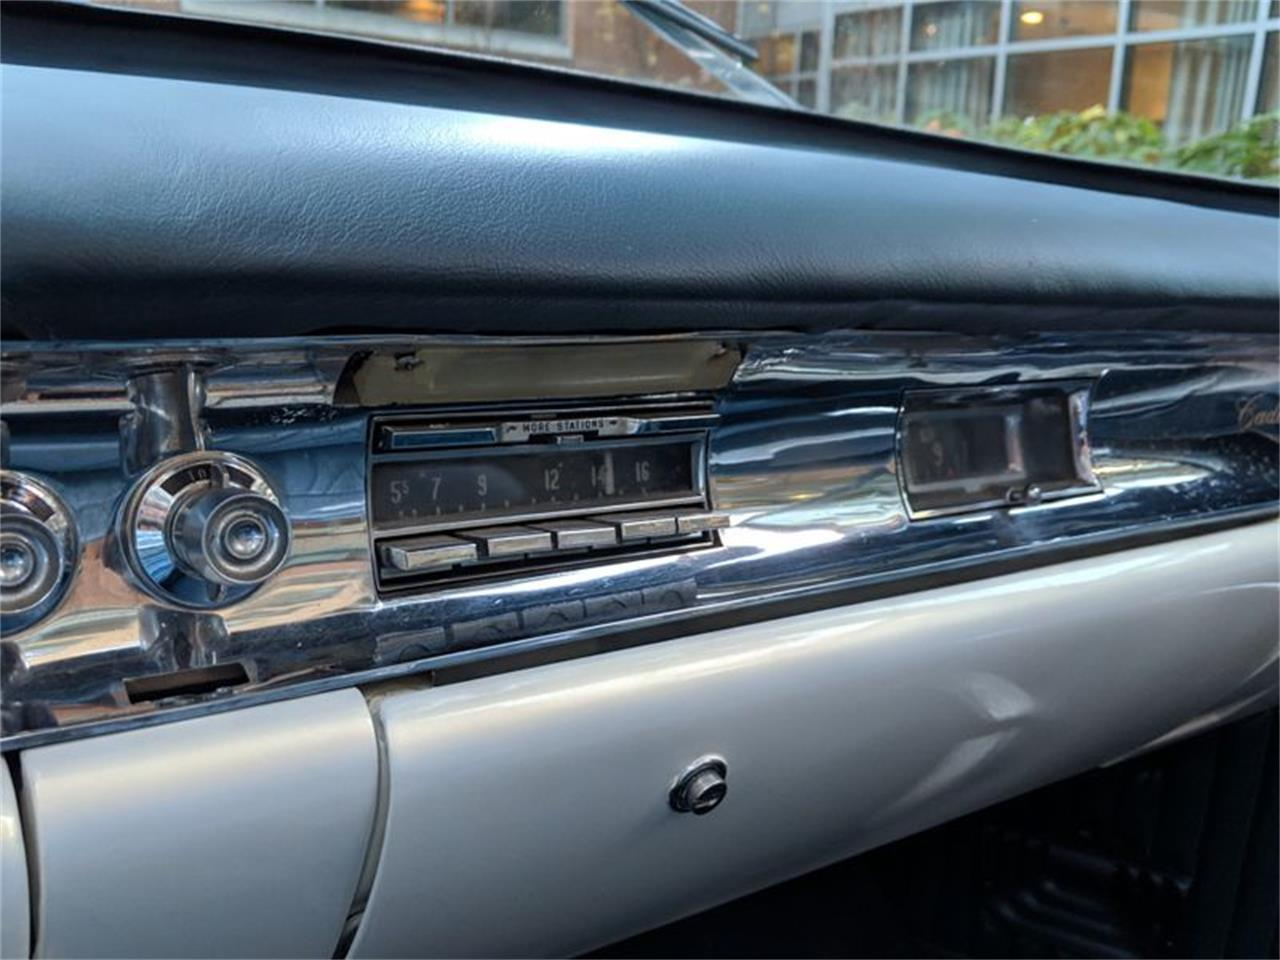 Large Picture of Classic 1957 Eldorado Biarritz located in TACOMA Washington Auction Vehicle - QQVD